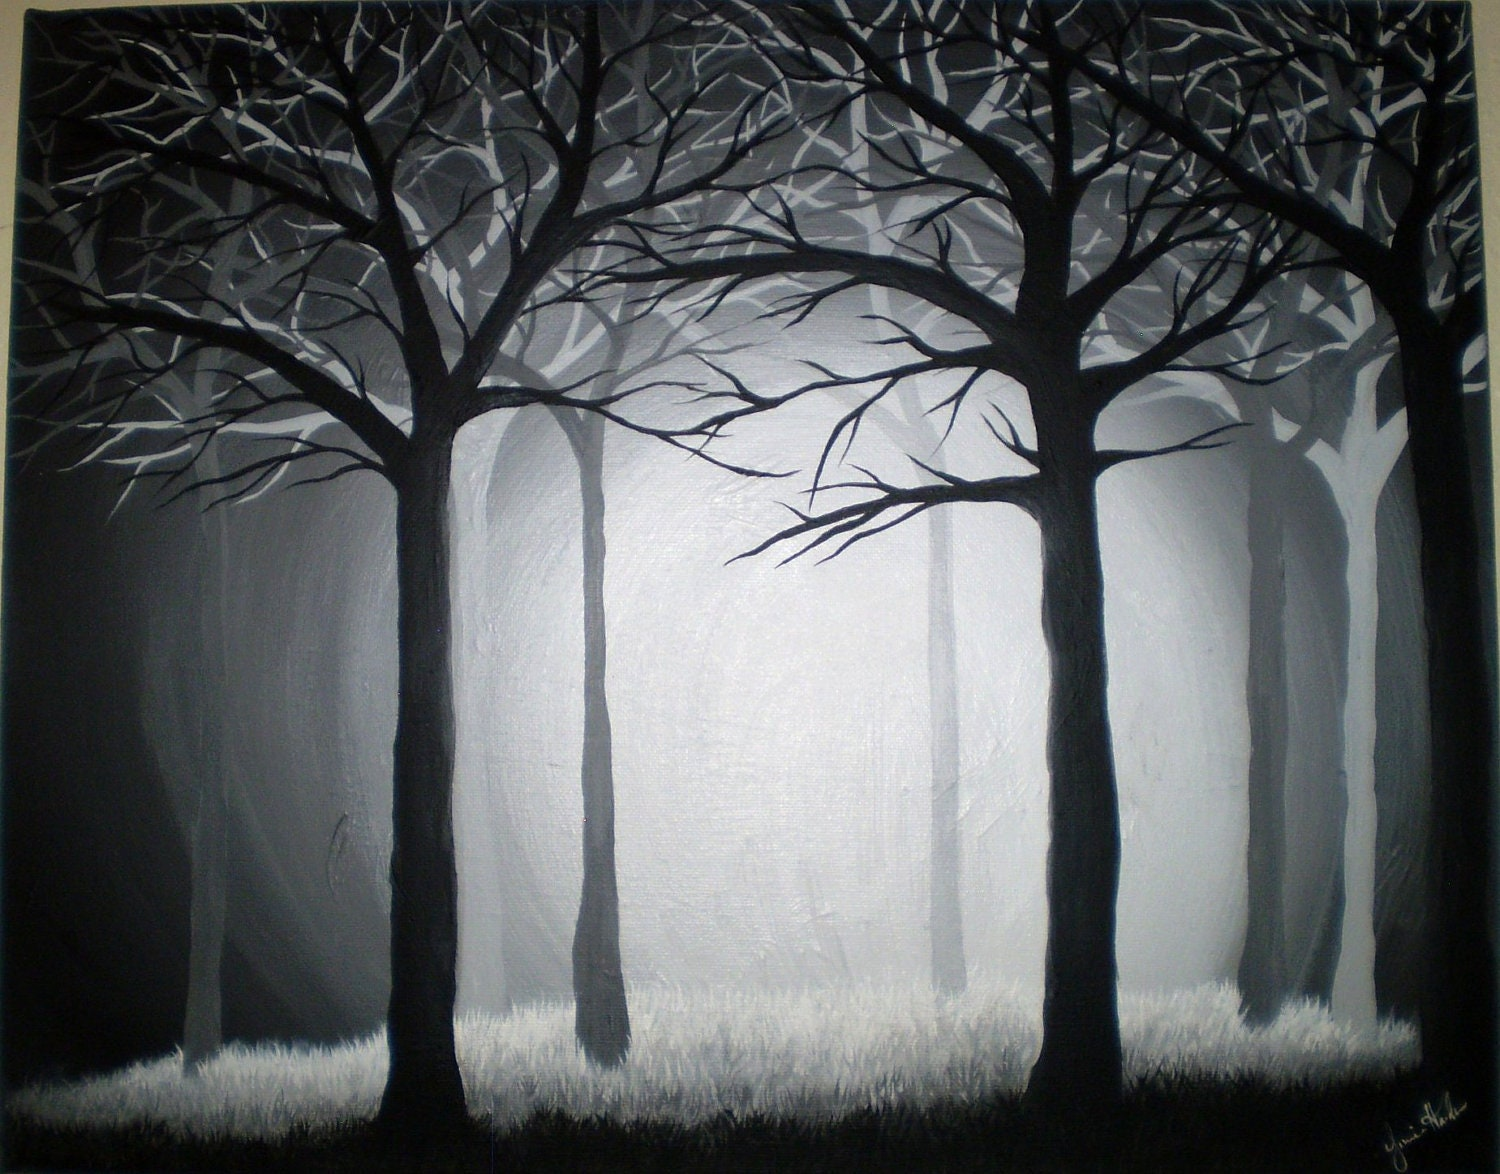 Dark forest 16x20 original acrylic painting for Painting a forest in acrylics